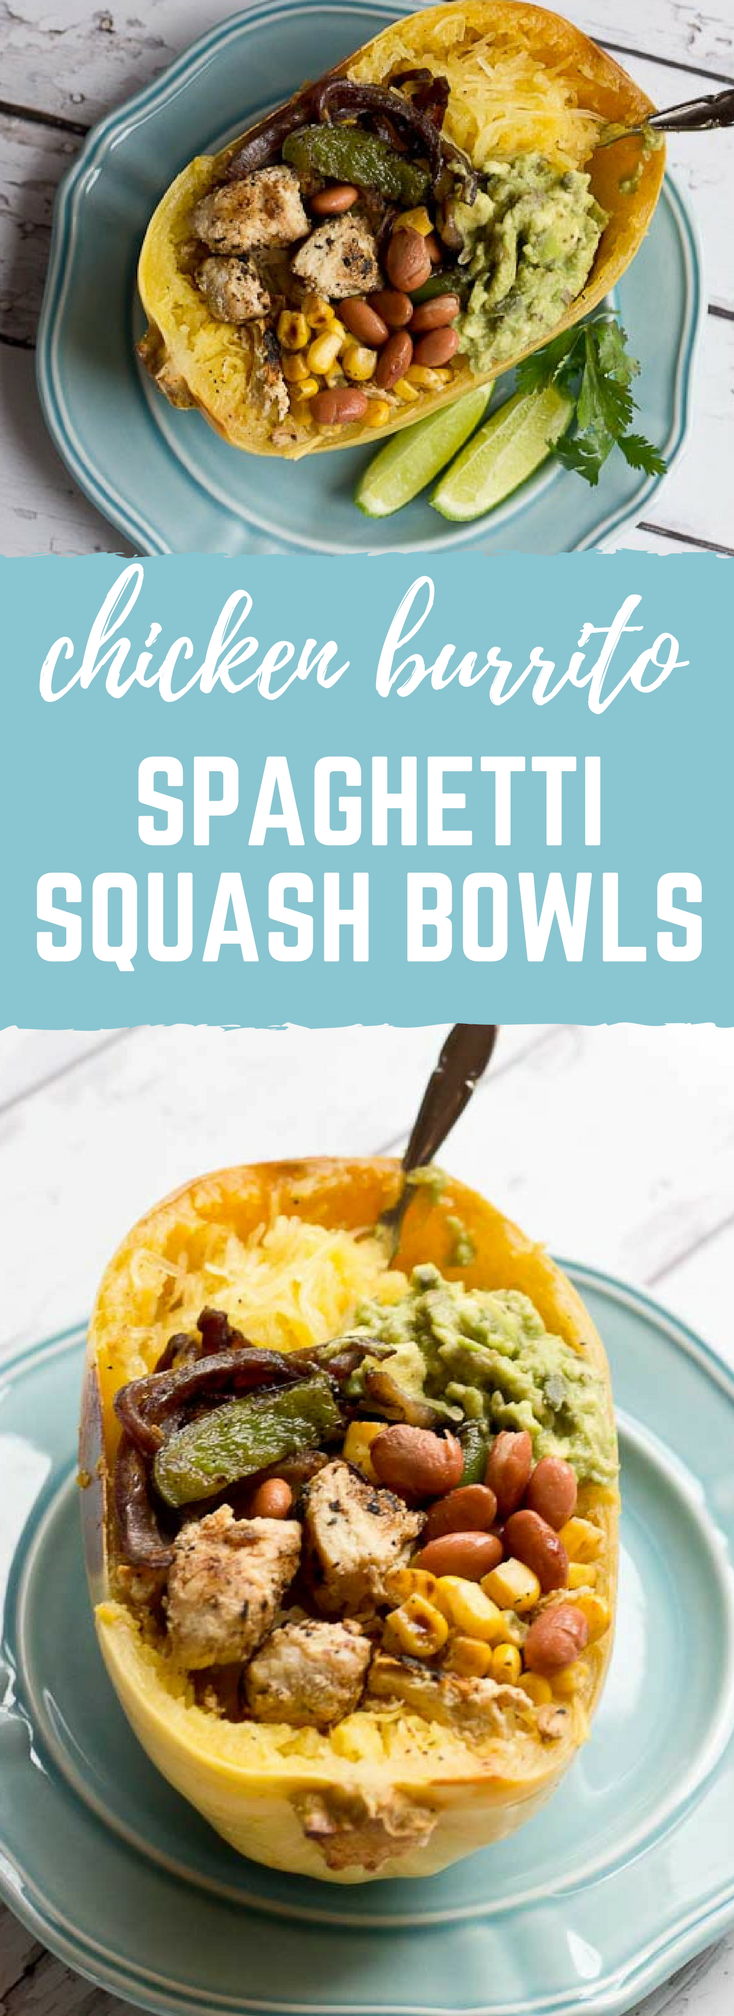 These Chicken Burrito Spaghetti Squash Bowls are protein packed and gluten free. I love this veggie filled take on this popular Mexican dish. Everything is better in a {spaghetti squash} bowl!